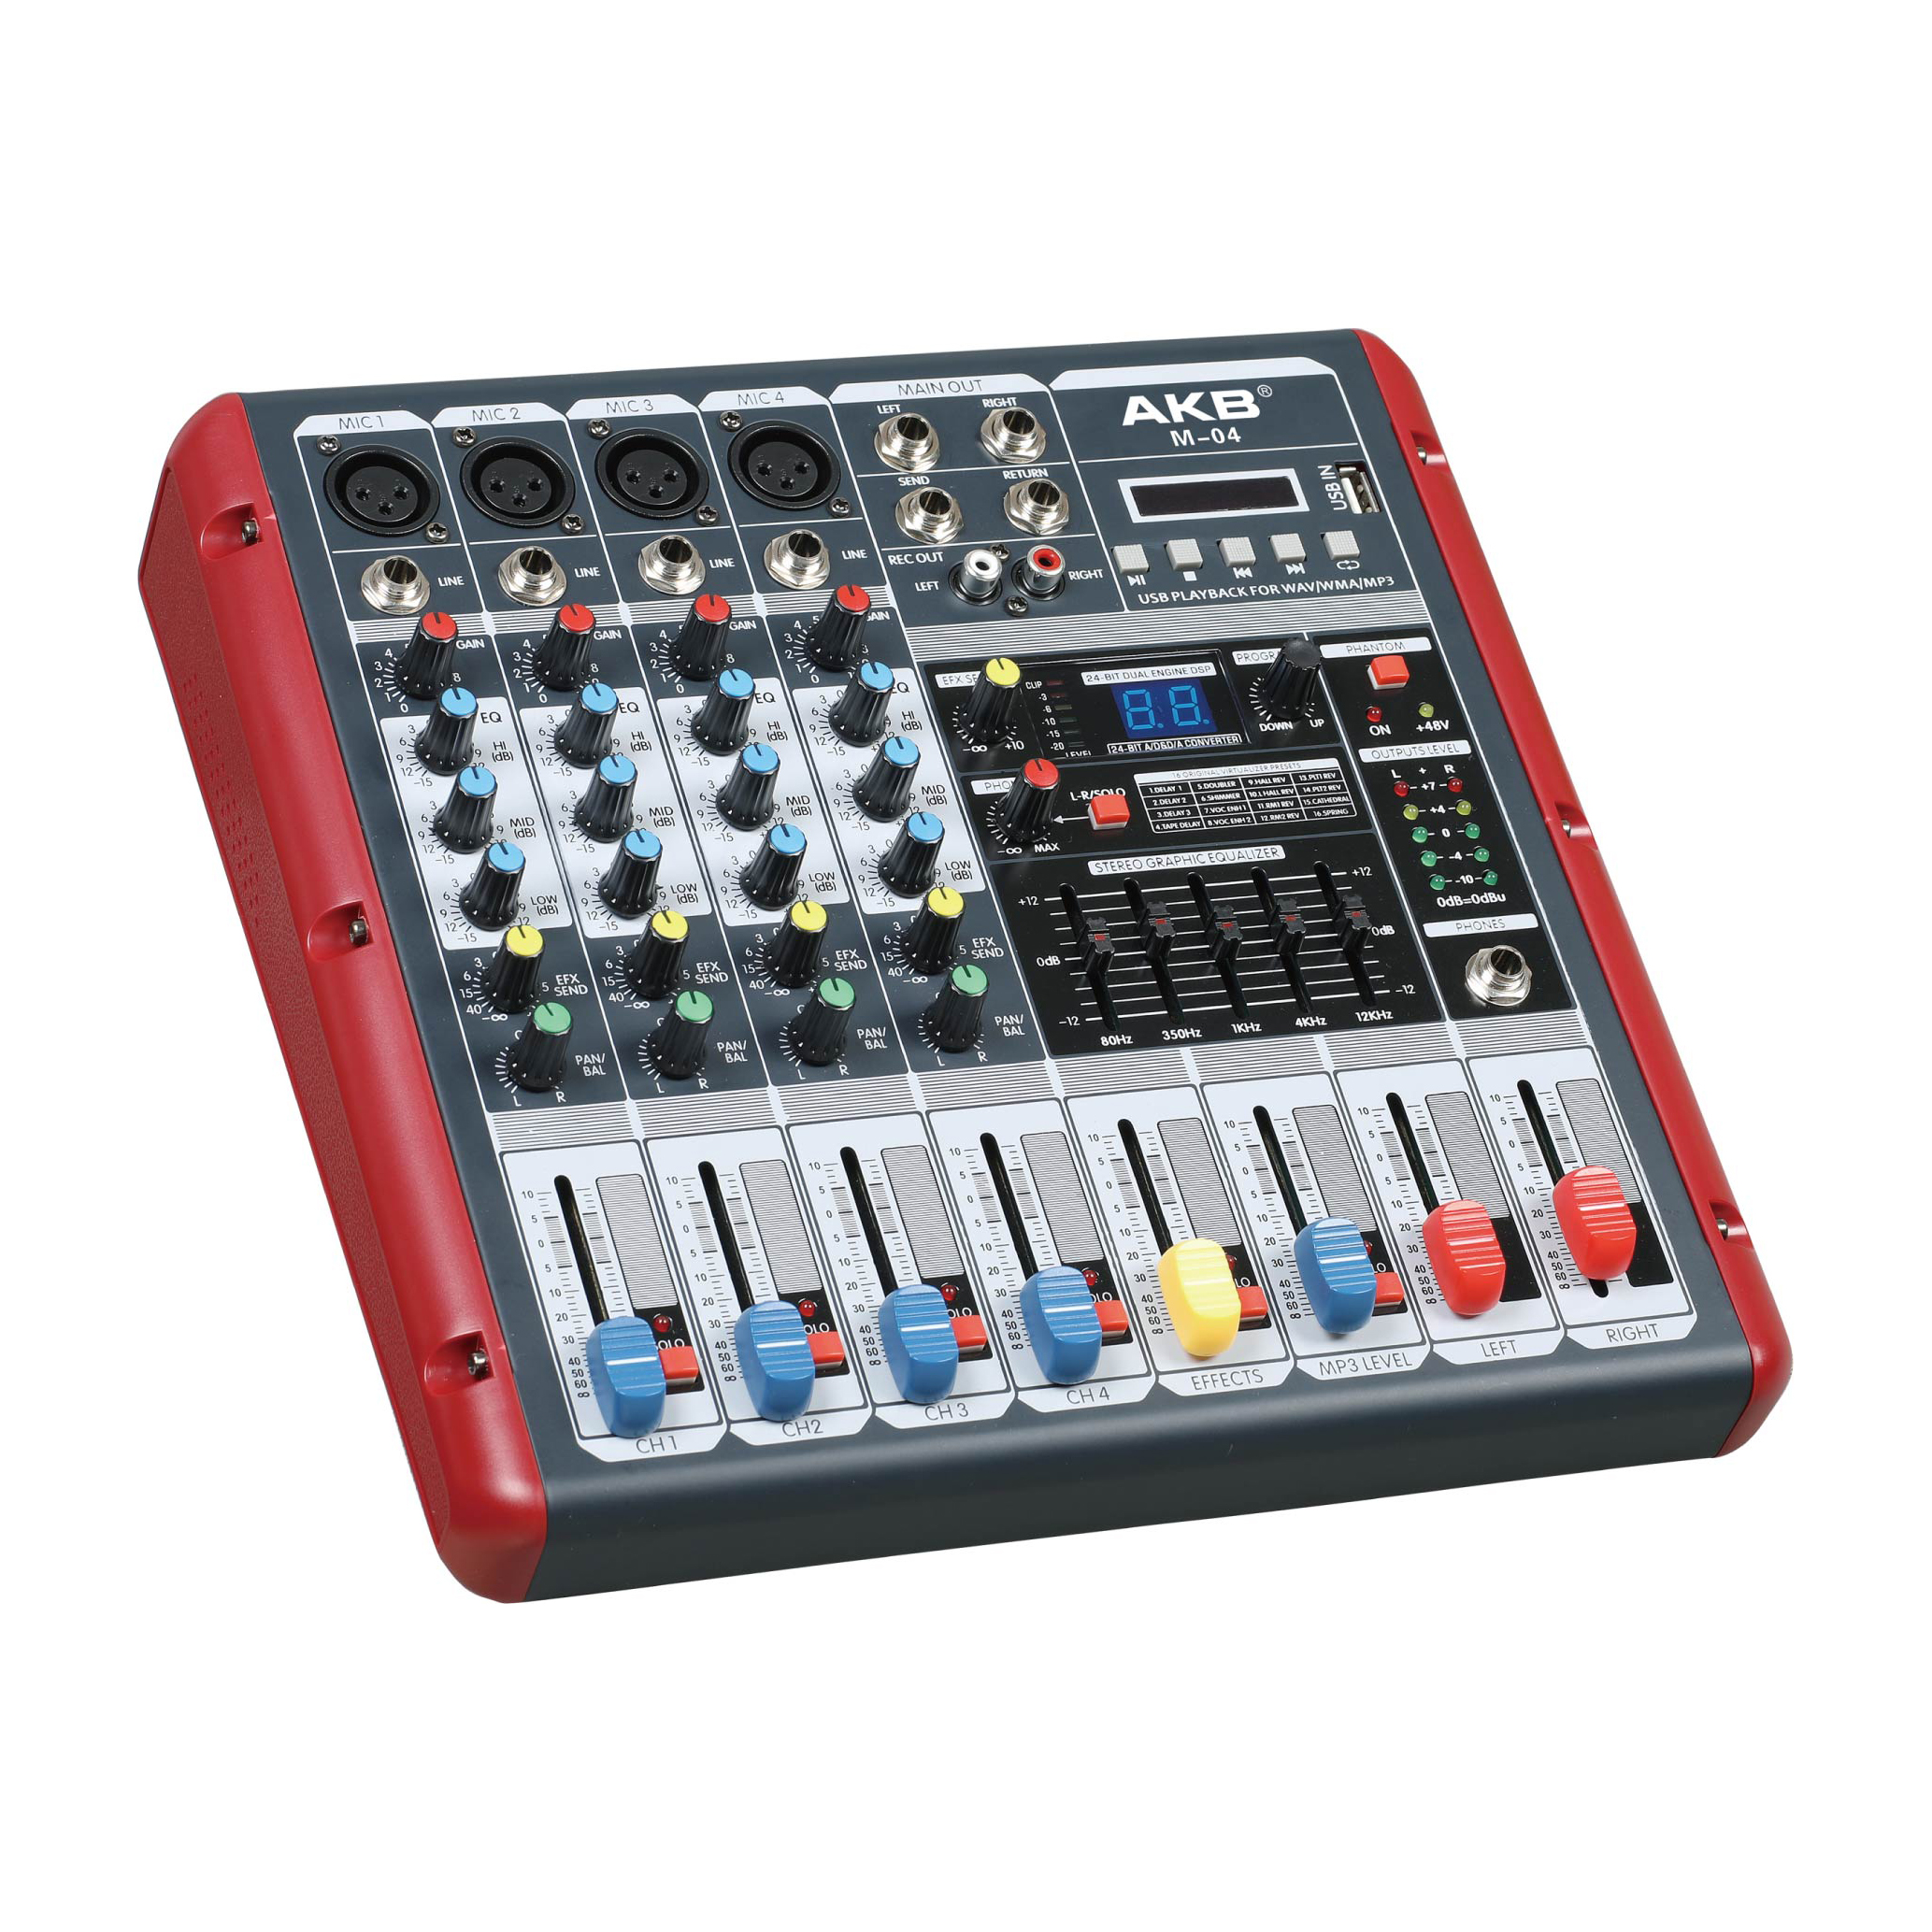 M-04 audio 16 DSP mixer